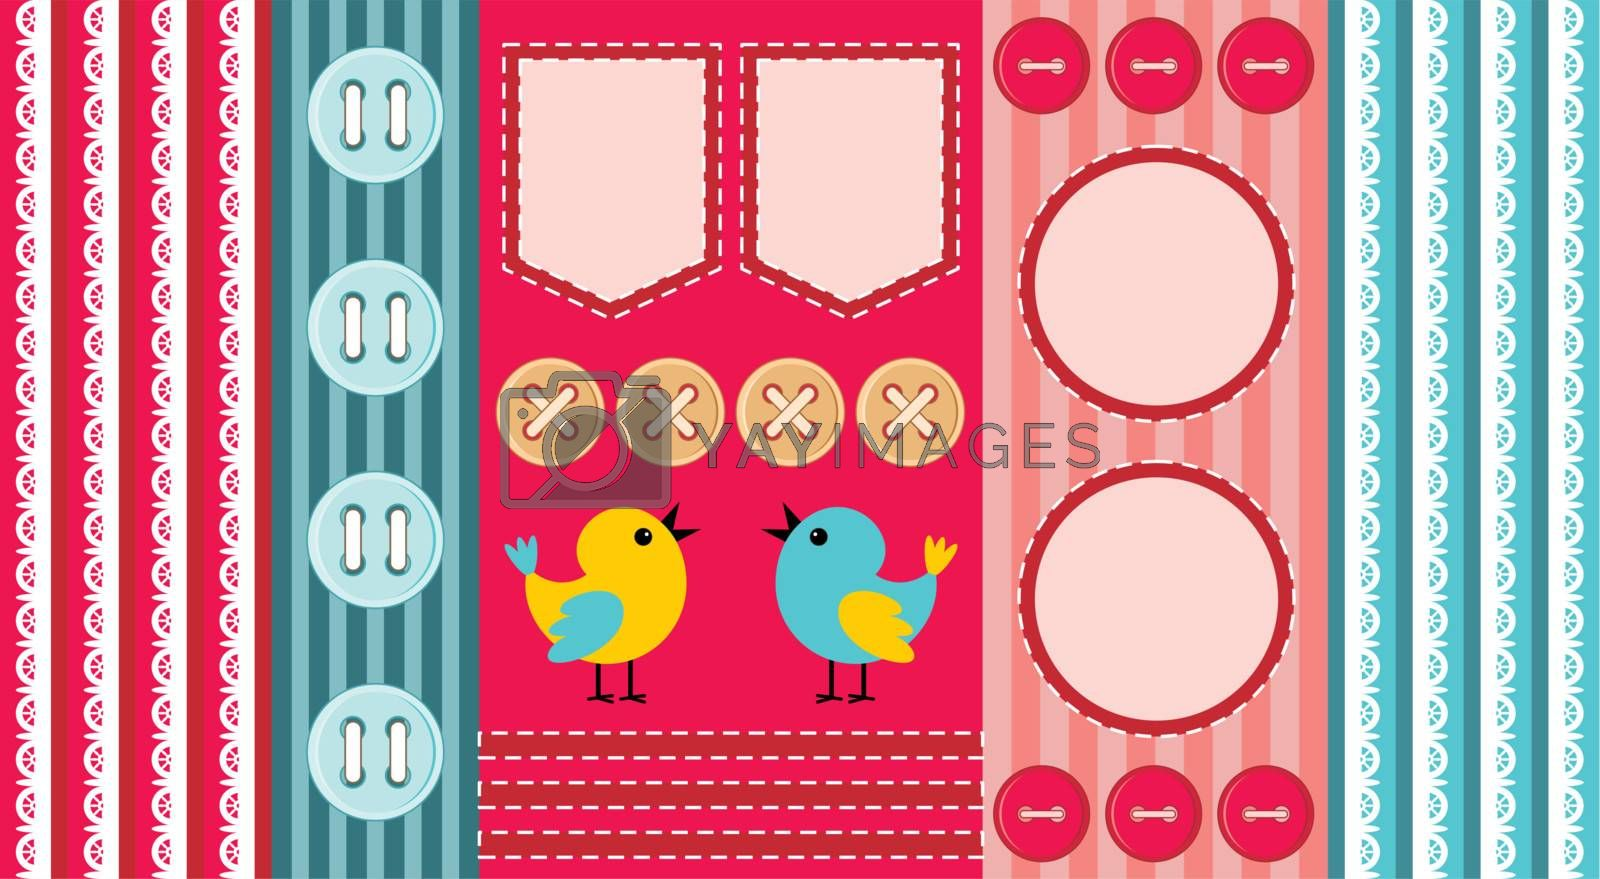 Scrapbook template with birds in different colors.